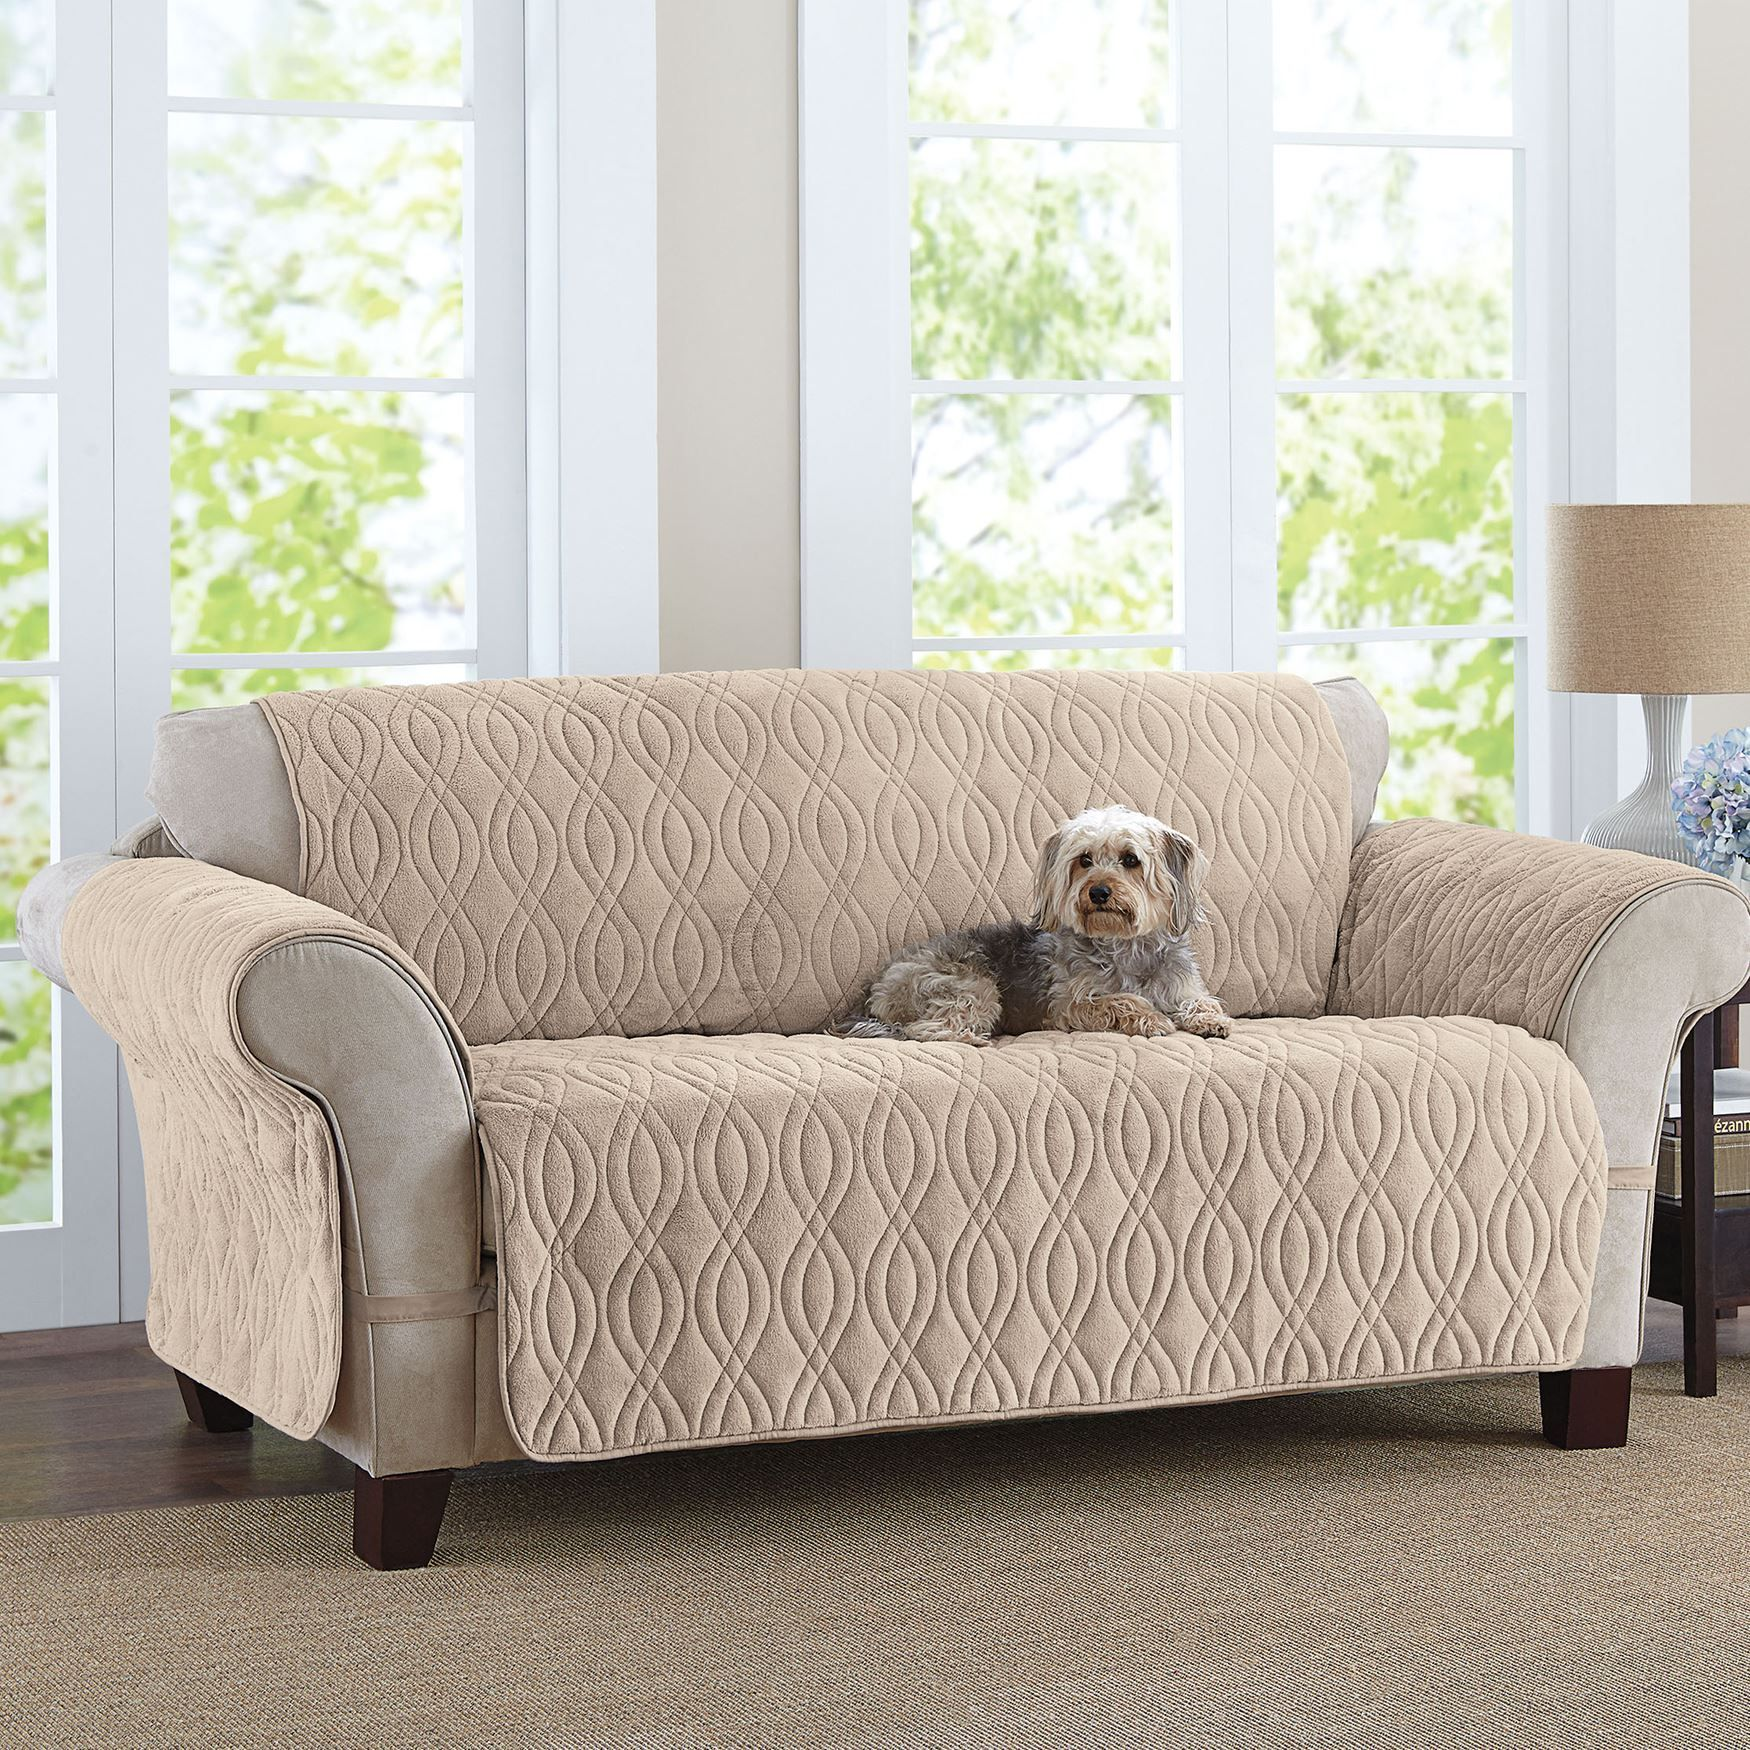 This Deluxe Quilted Fleece Like Sofa Cover Is Designed To